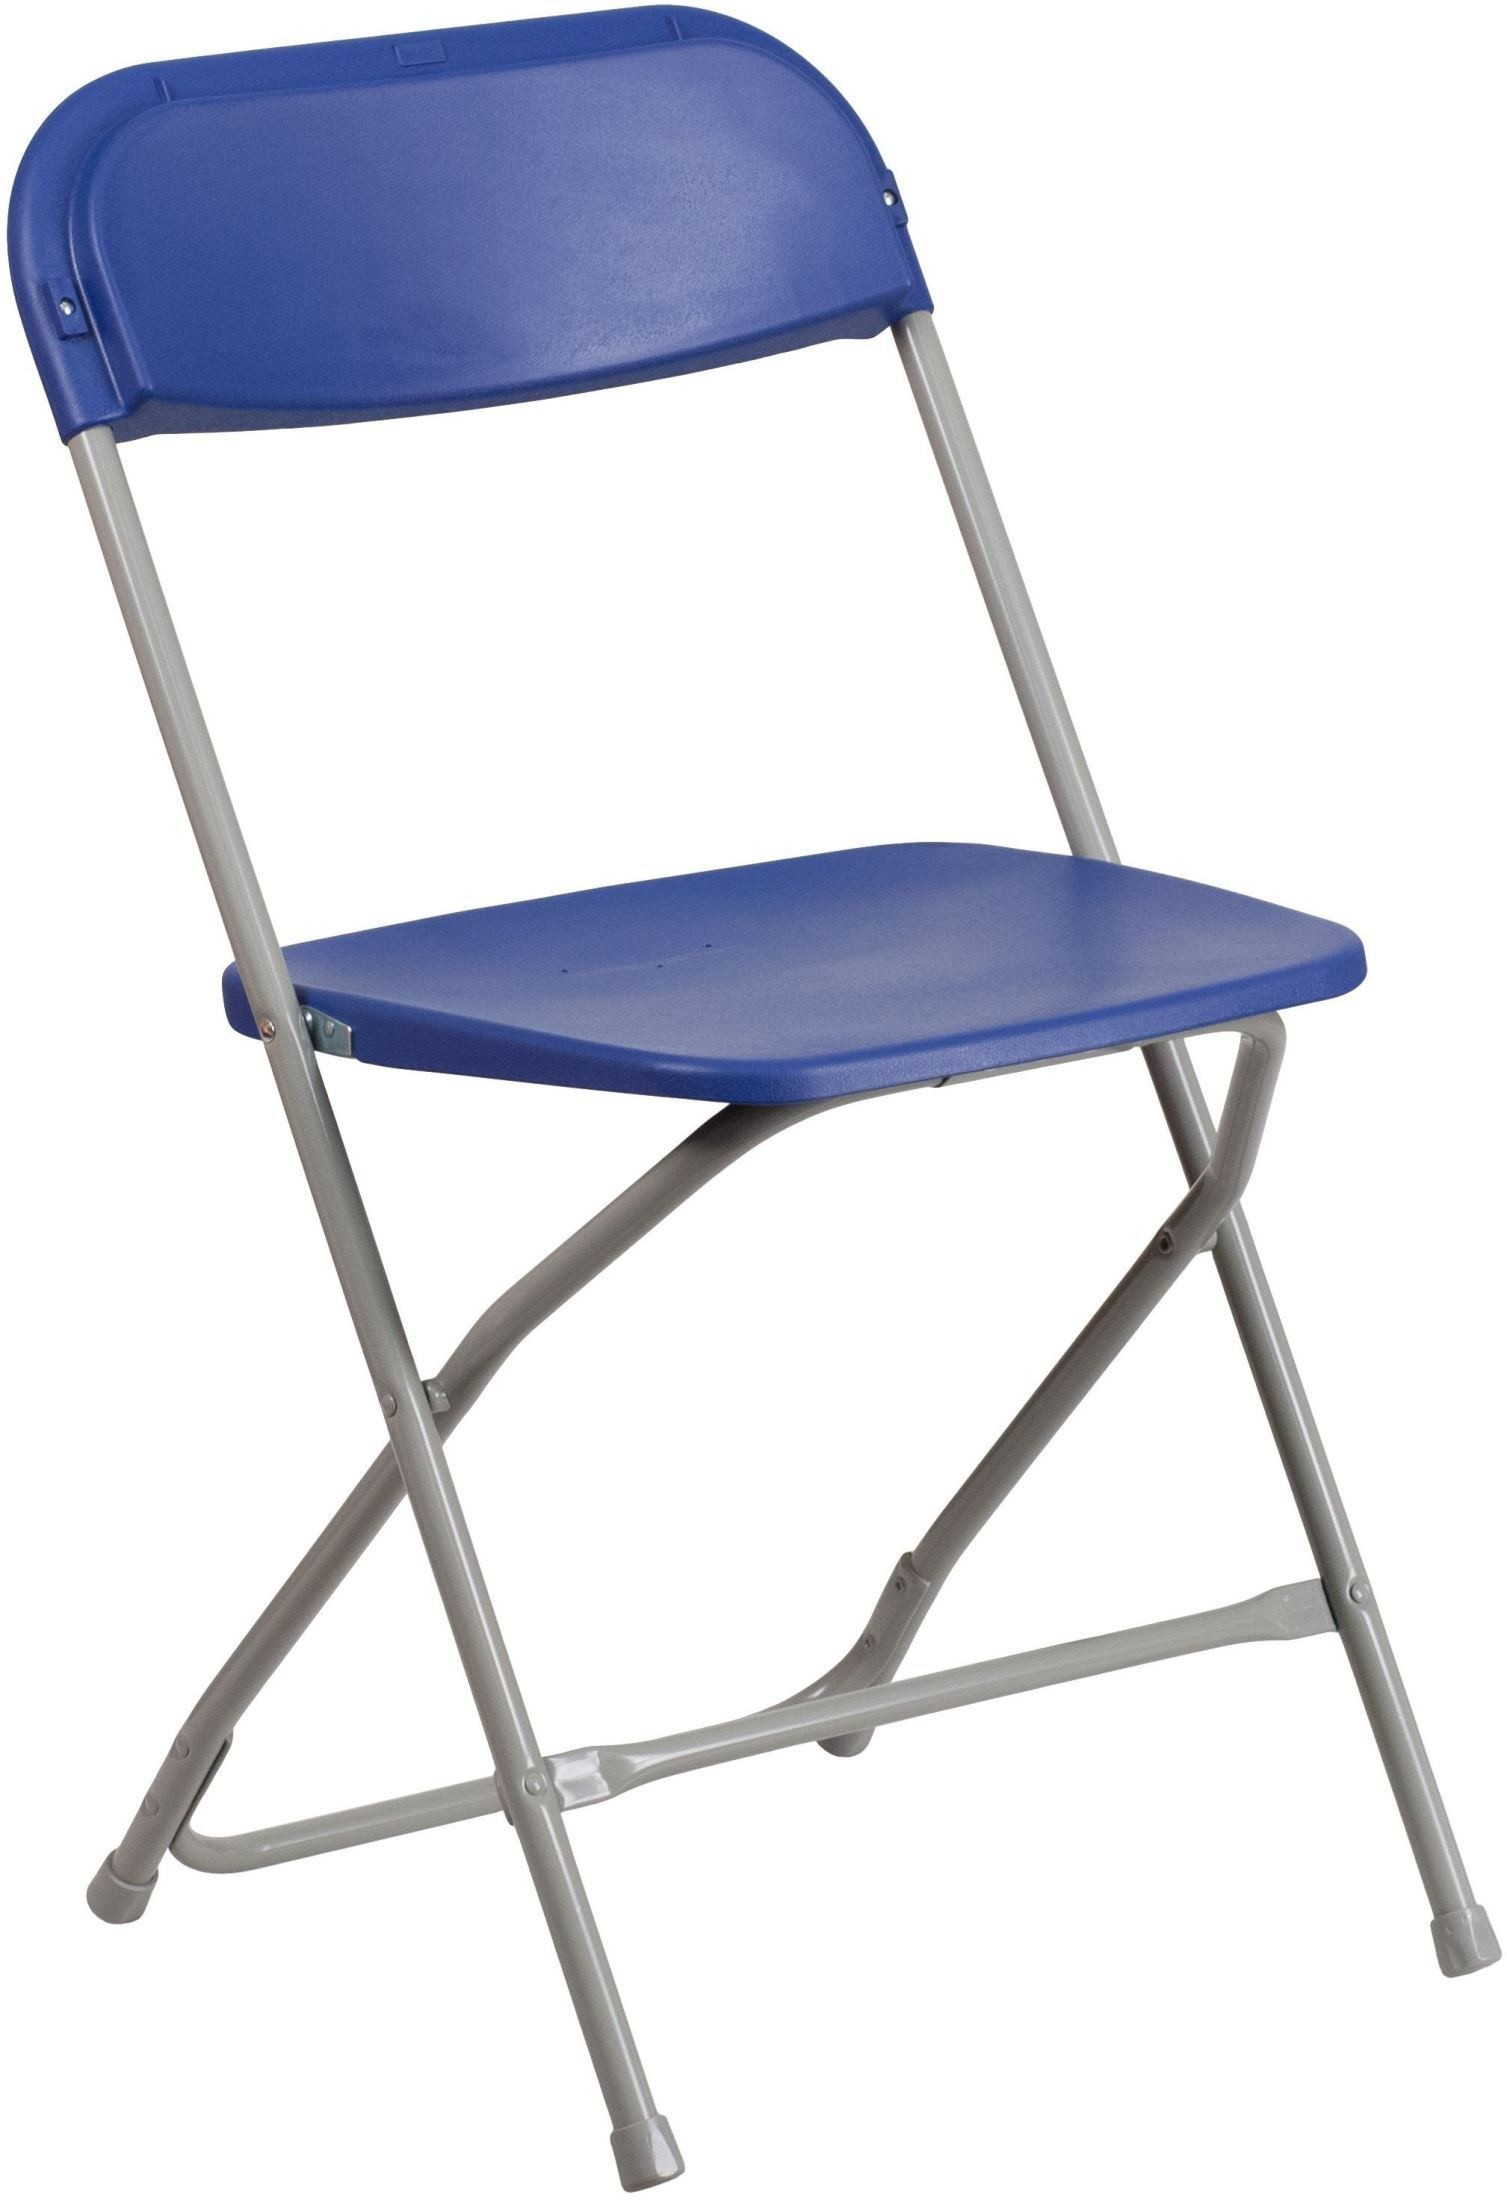 HERCULES Series Premium Blue Plastic Folding Chair from Renegade